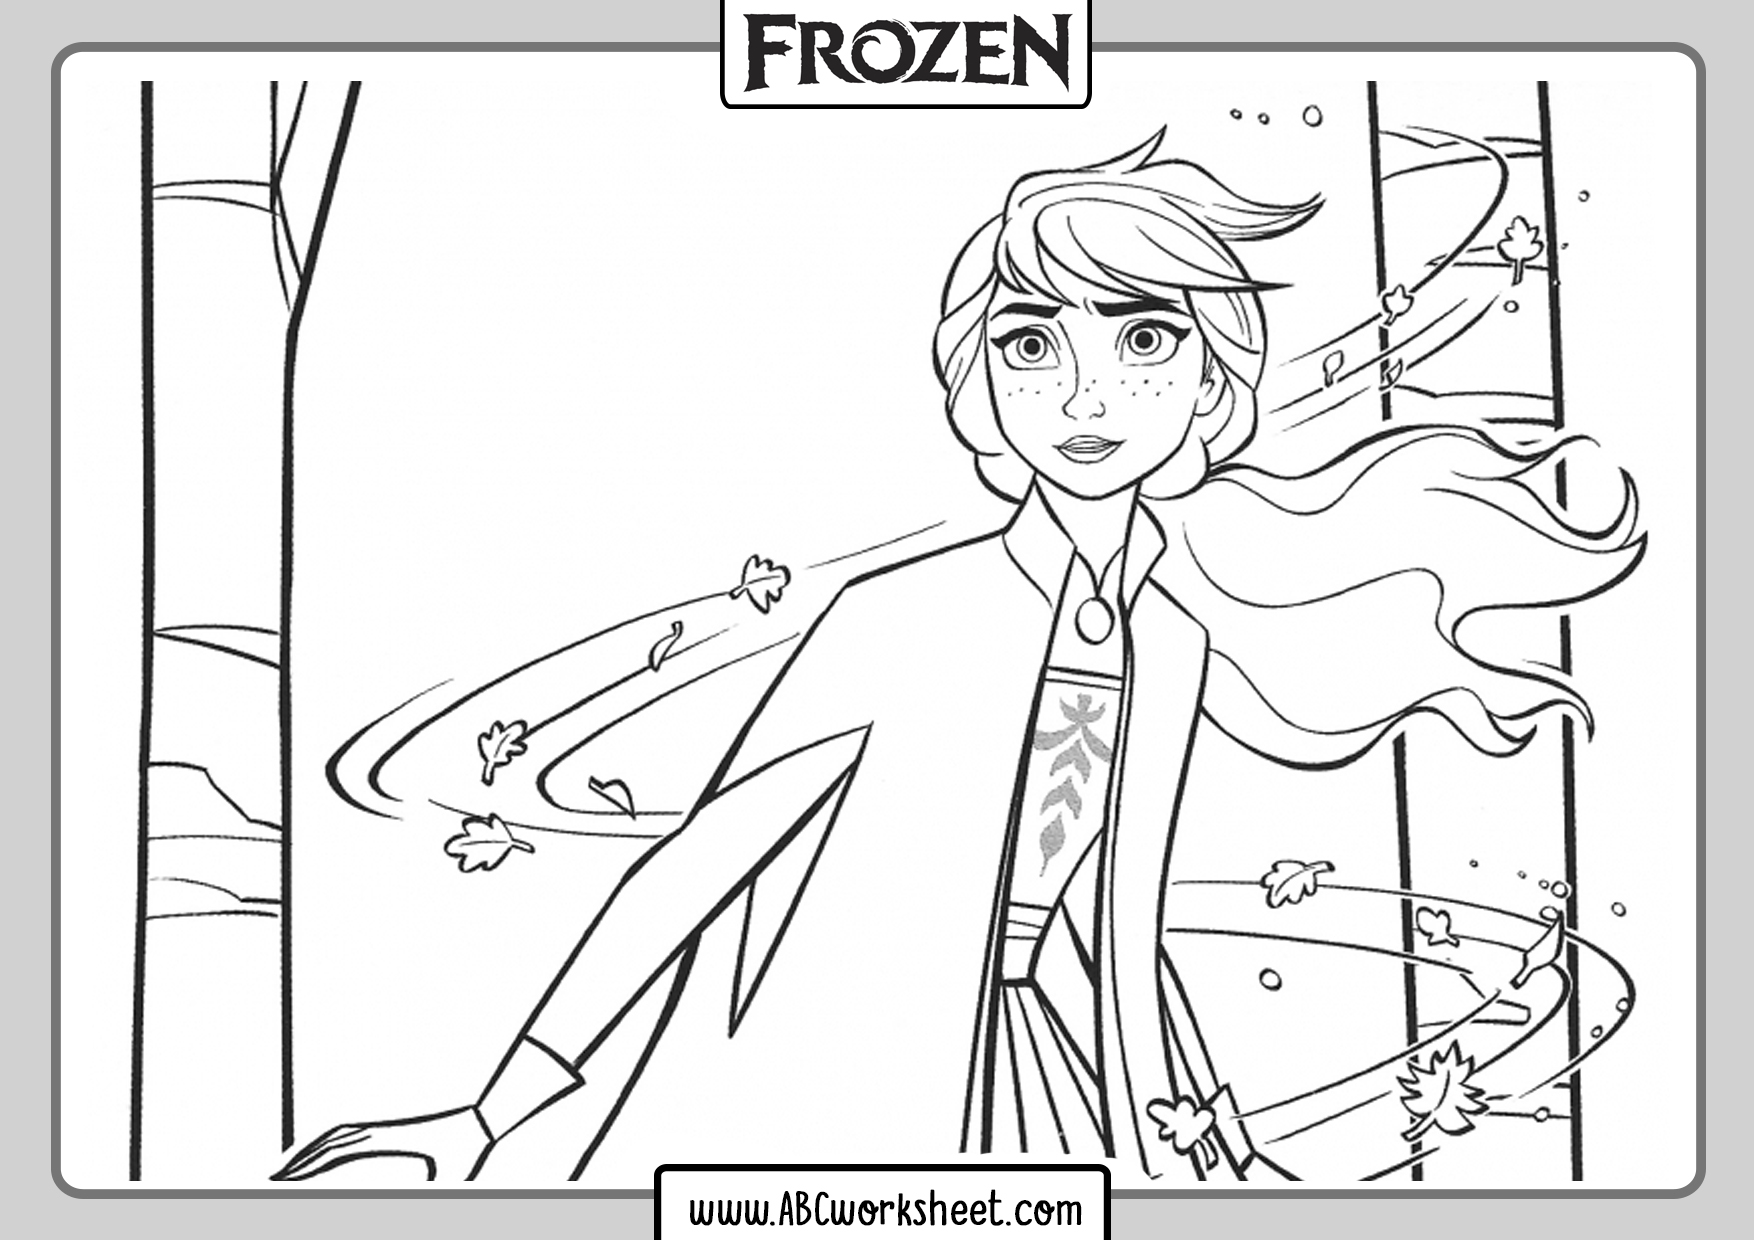 coloring pages to print frozen 30 free frozen colouring pages to pages print frozen coloring